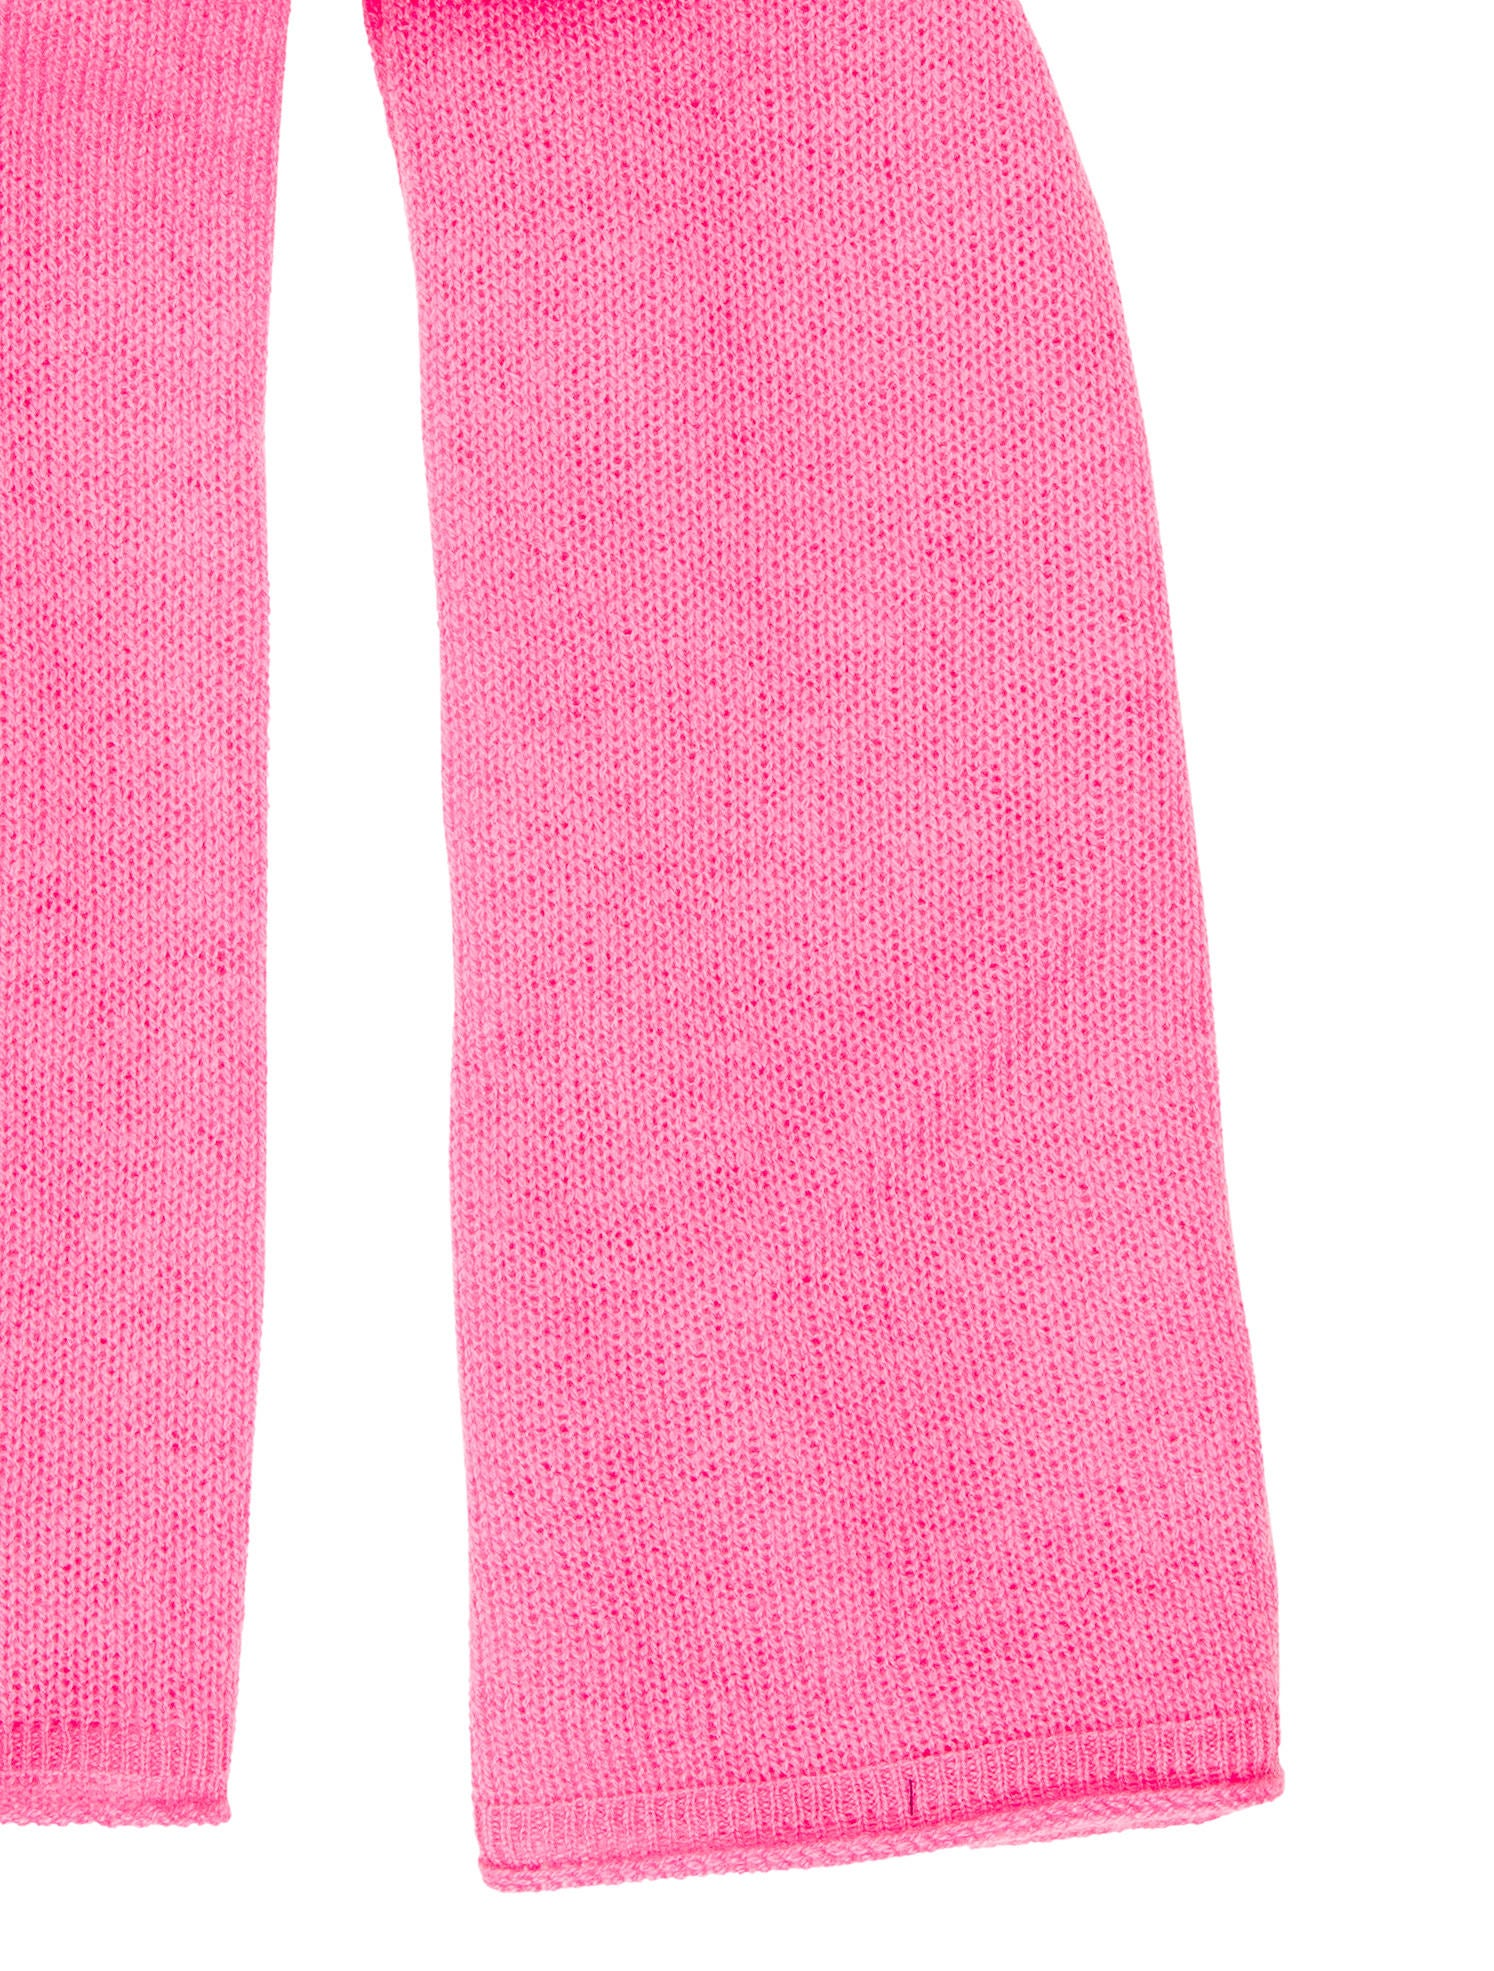 Deluxe Comfort Pink Cashmere-feel New England Plaid Scarf Pink. Sold by techclux.gq $ Deluxe Comfort Cashmere-feel Blue New England Plaid Acrylic/Nylon inch x inch Scarf Blue. Sold by techclux.gq $ $ Eileen Fisher Womens Cashmere Ombre Decorative Scarf.